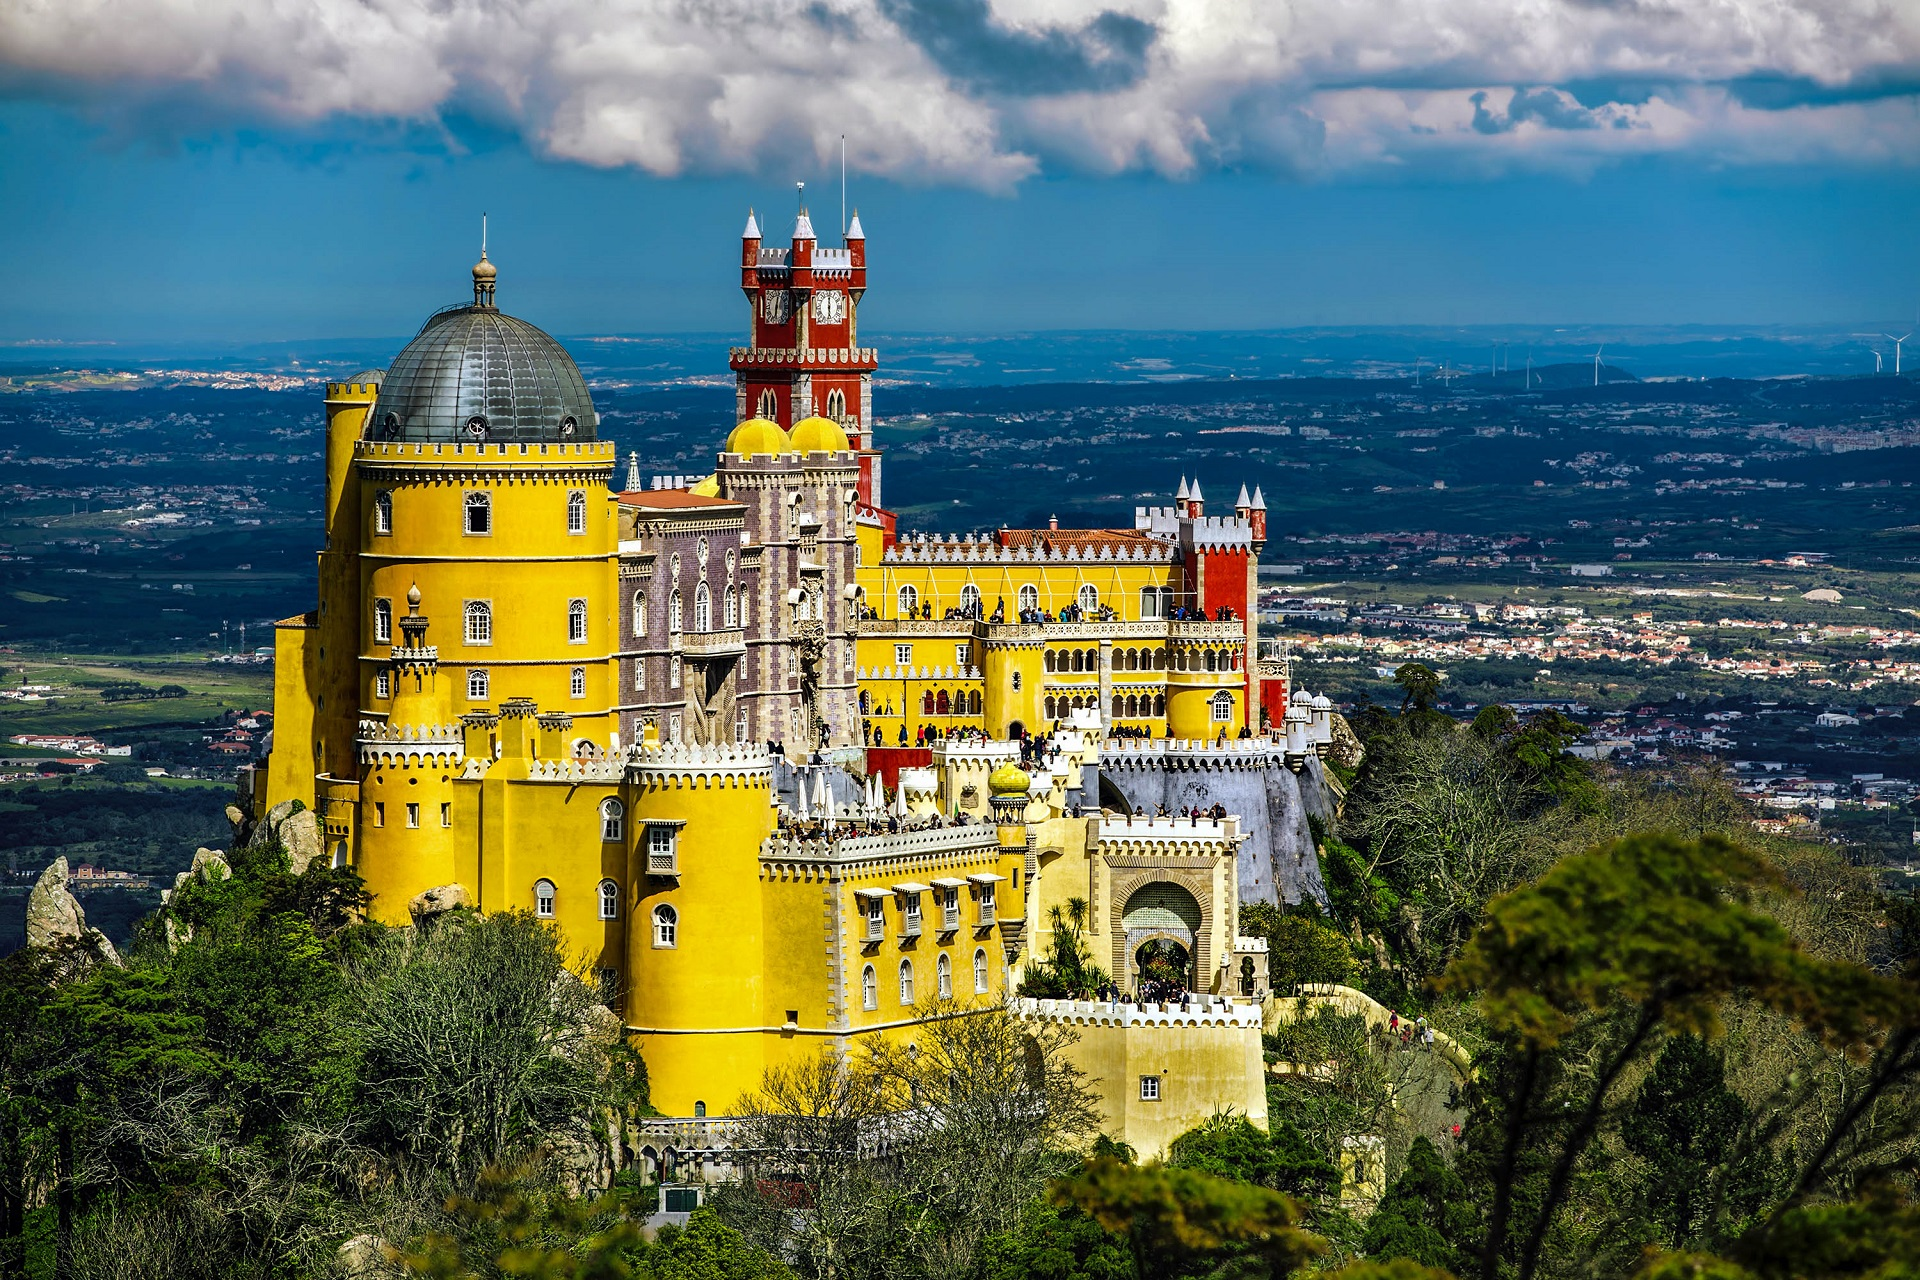 the most amazing buildings around the world The Most Amazing Buildings Around the World According to Lonely Planet pena national palace sintra portugal shutterstock 403148269 2